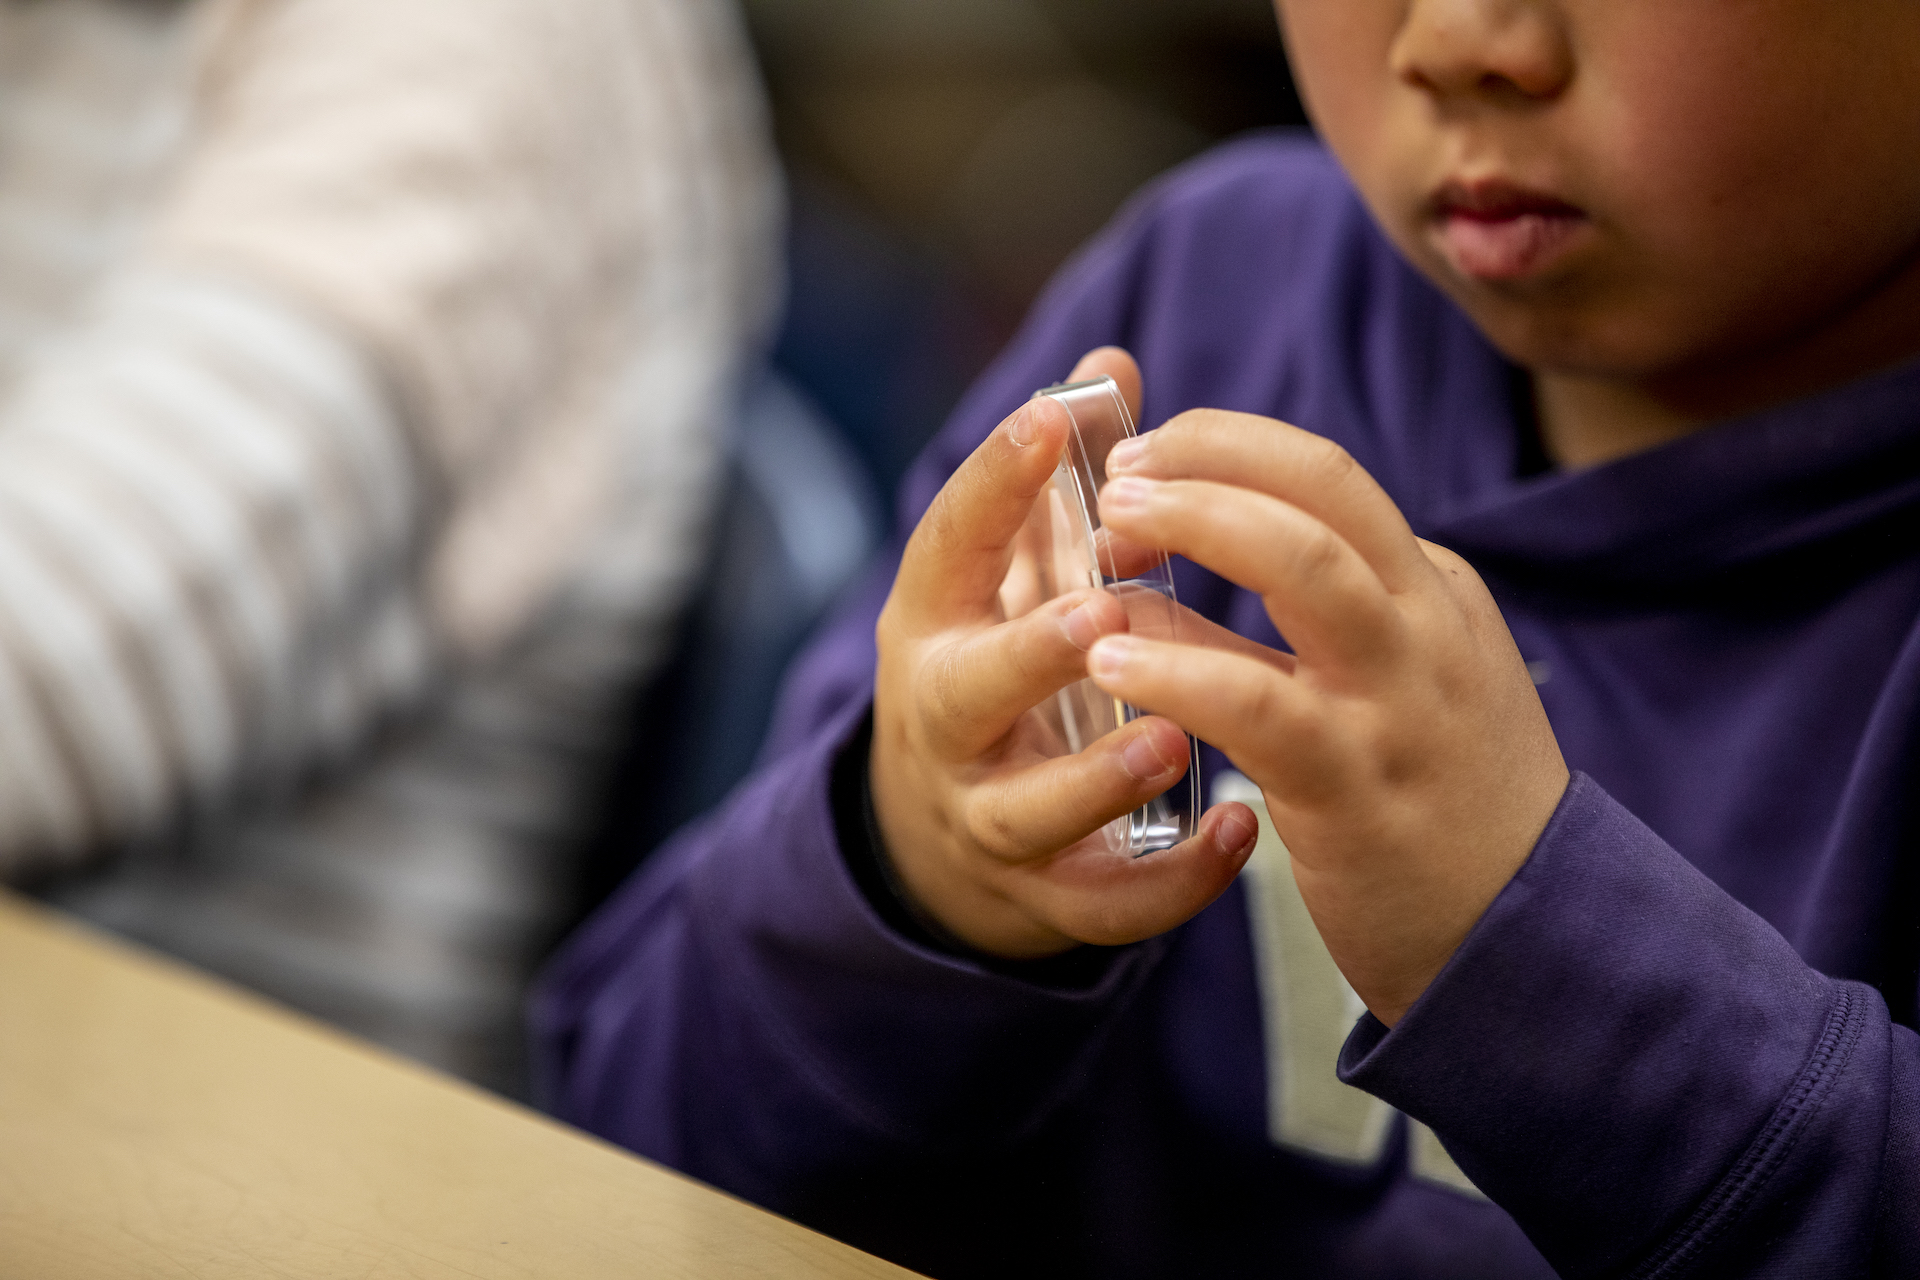 A young student in a University of Washington hoodie assembles a solar spinner from a small panel and a petri dish.